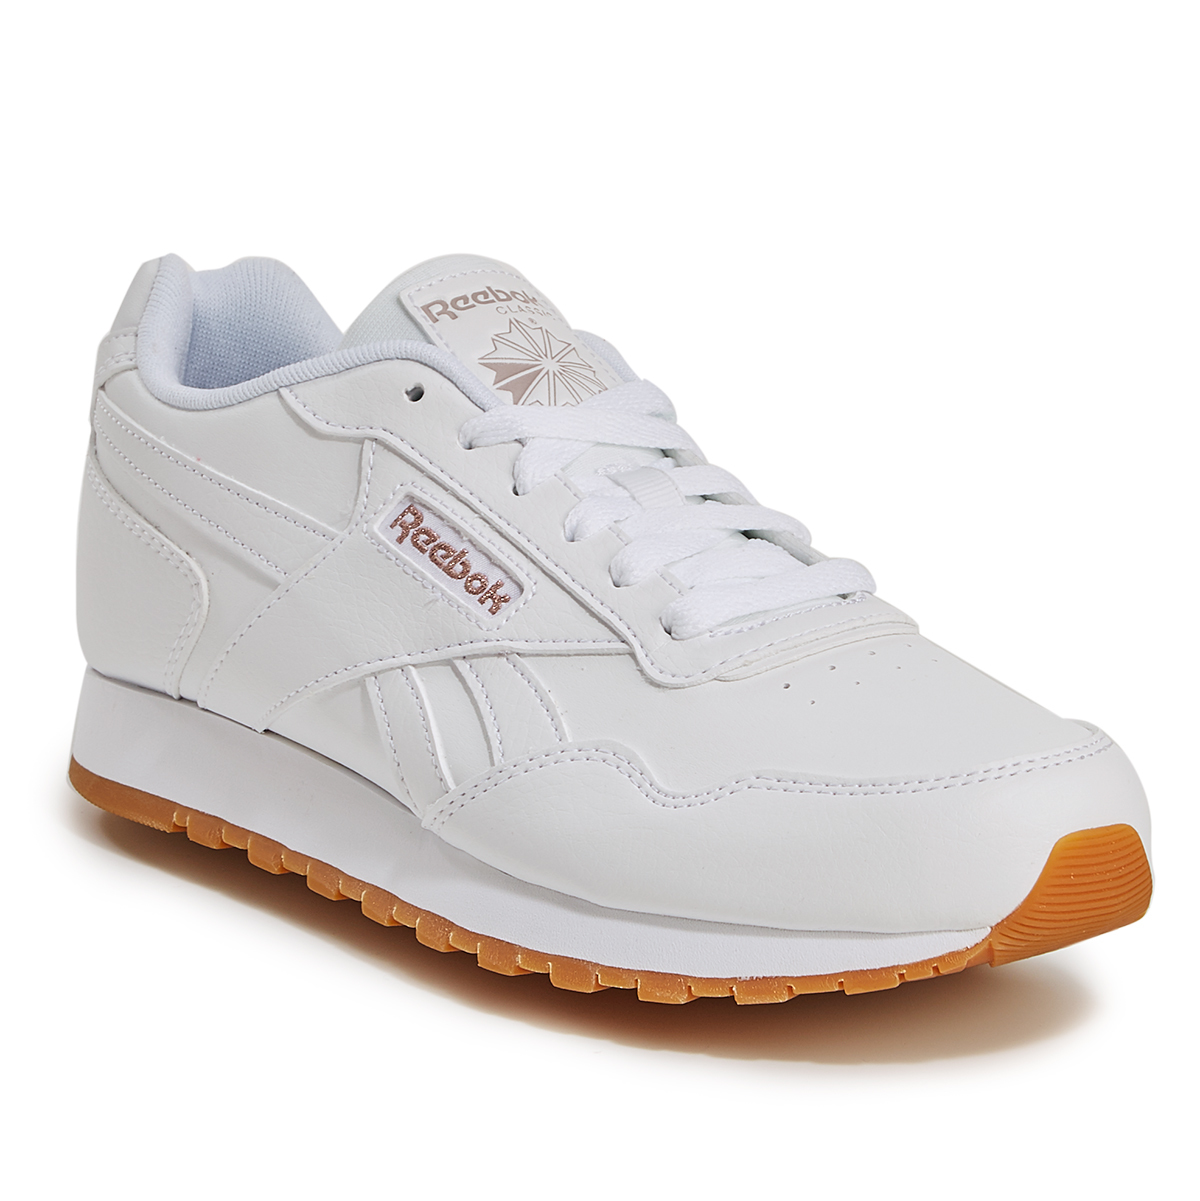 f9dc1f17 Details about Reebok Women's Classic Harman Run Sneakers